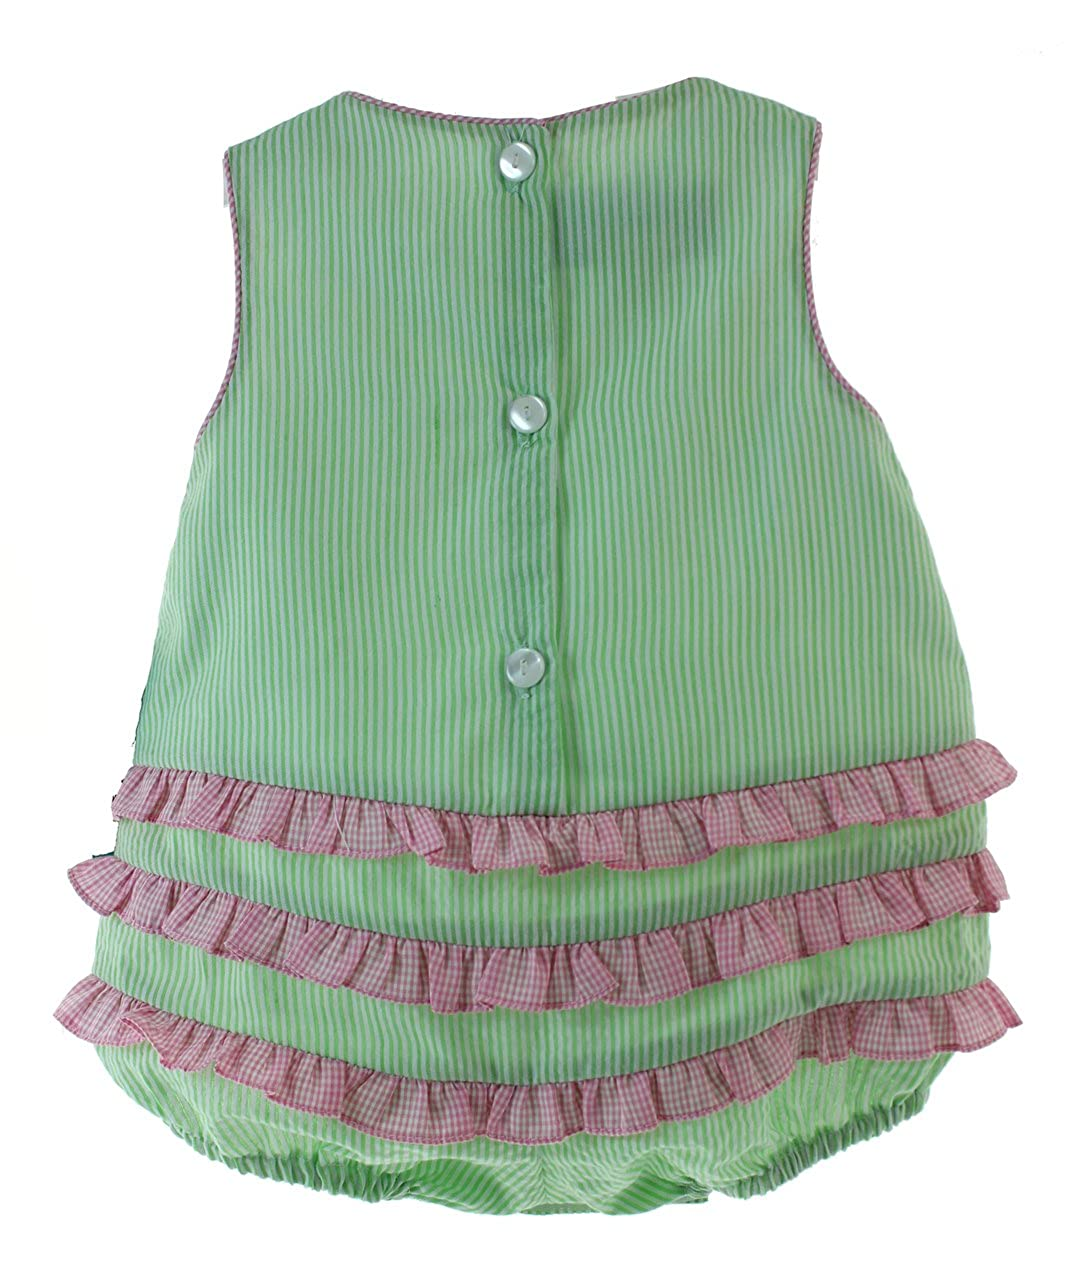 1c5fd1285f6 Amazon.com  Infant Girls Green Sunsuit Bubble Outfit with Watermelons